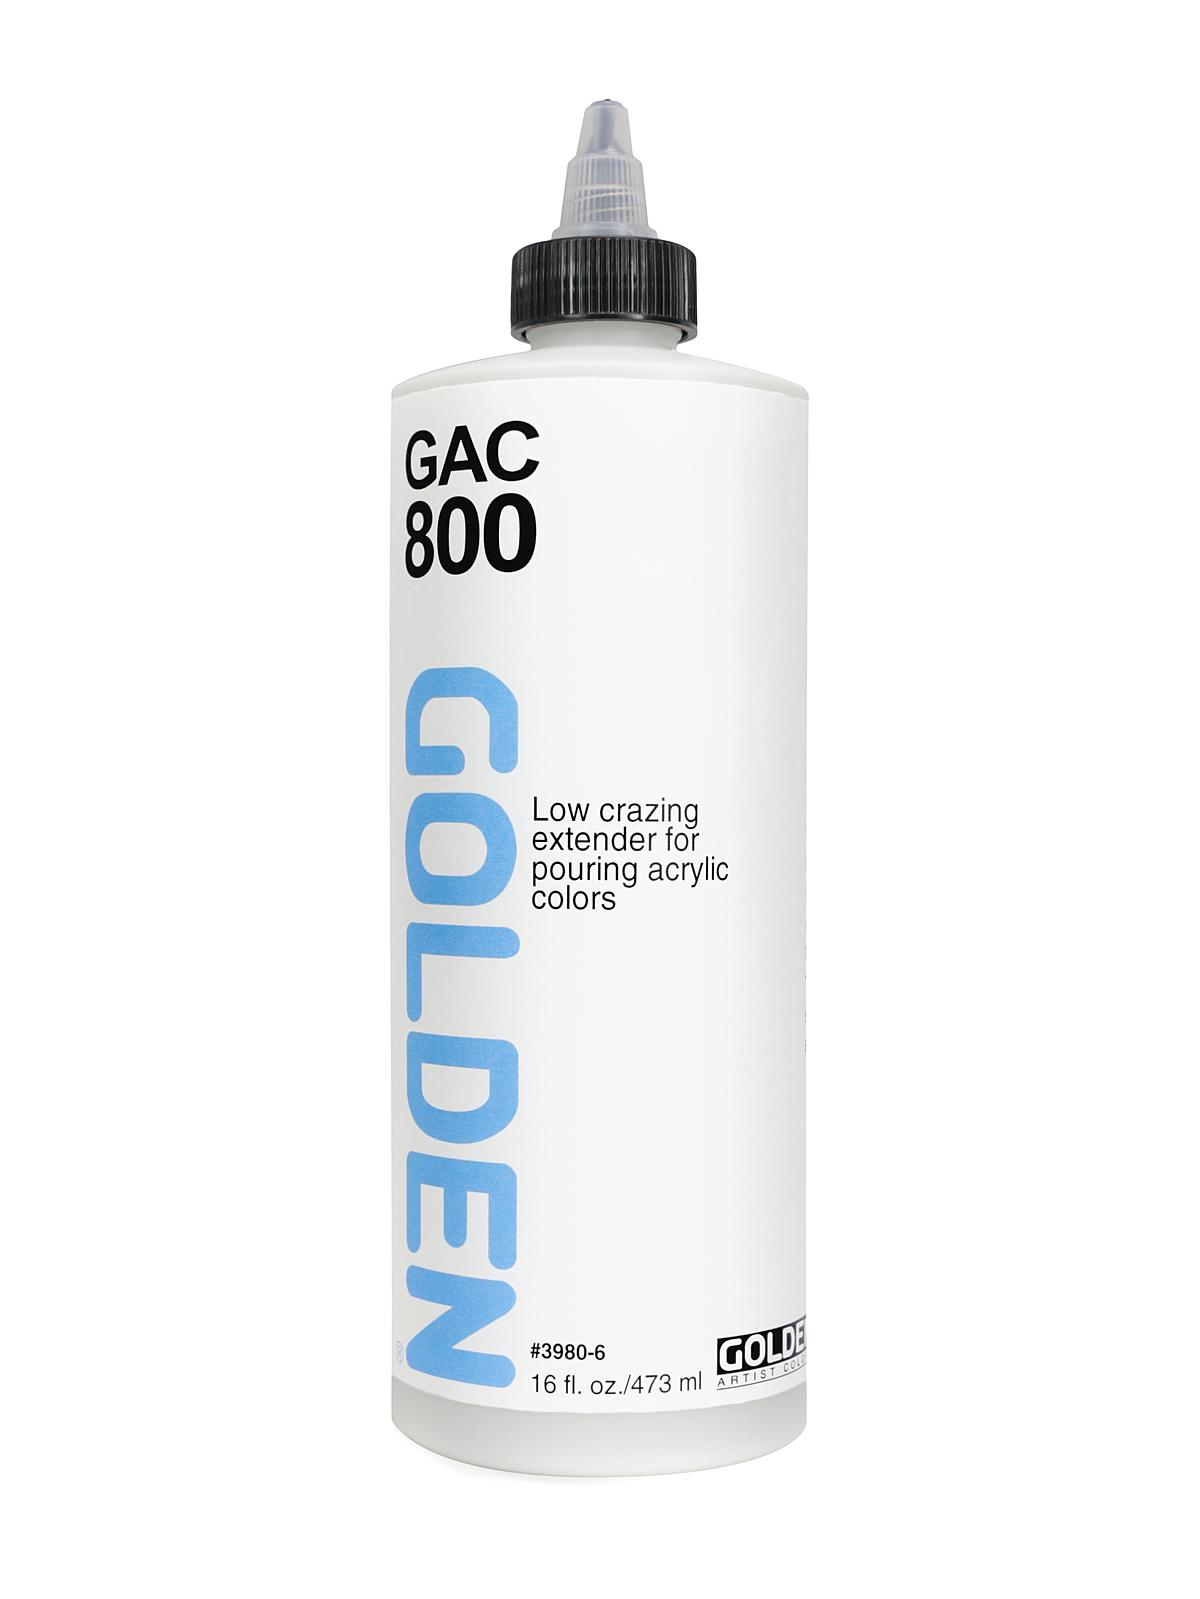 Golden Gac 800 Acrylic Medium Misterart Com